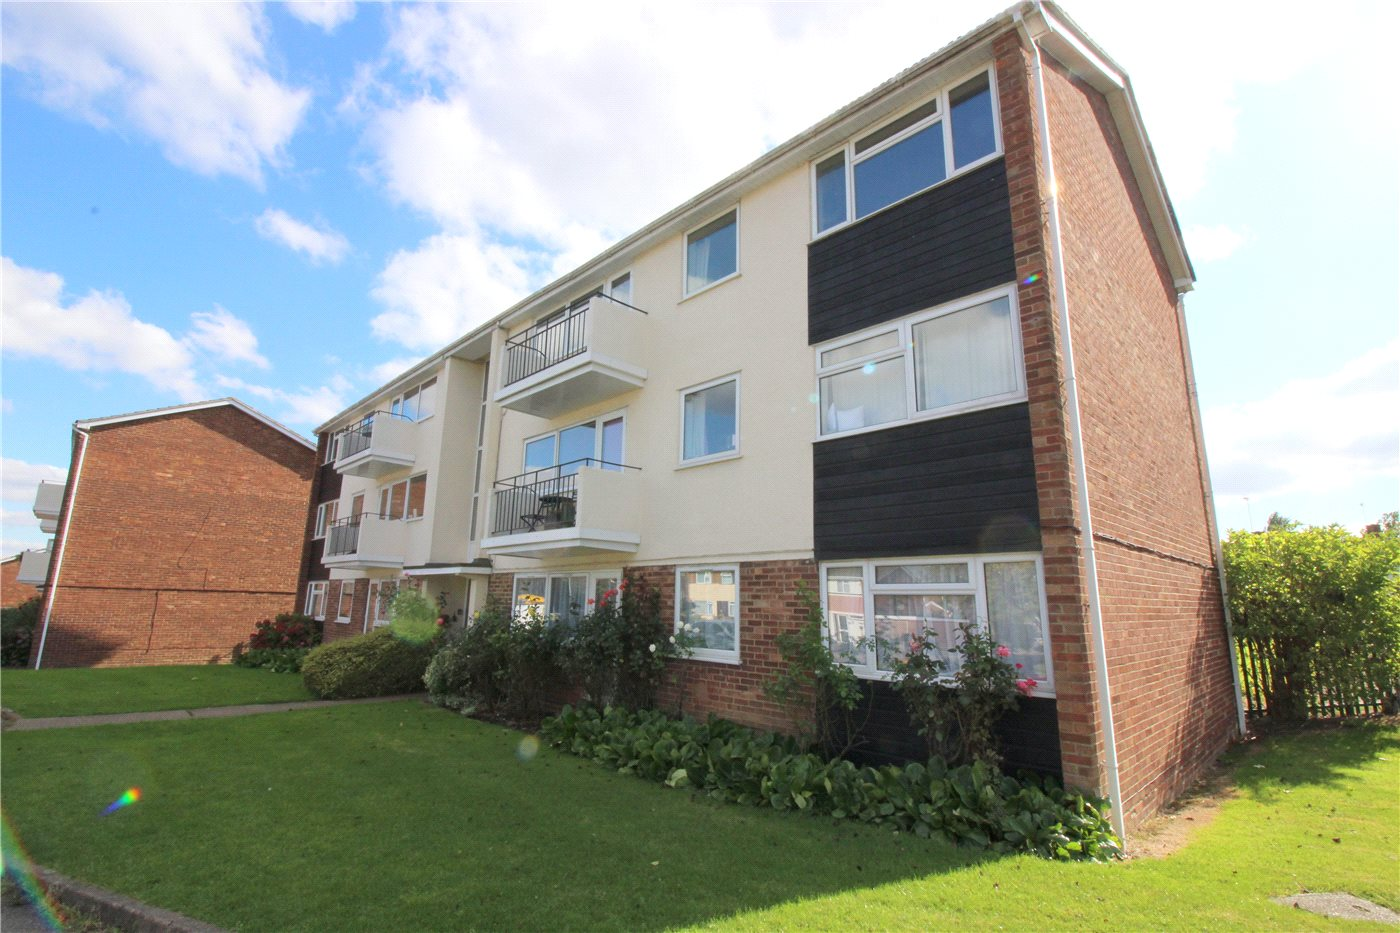 3 Bedrooms Flat for sale in Stratfield Road, Borehamwood, Hertfordshire, WD6